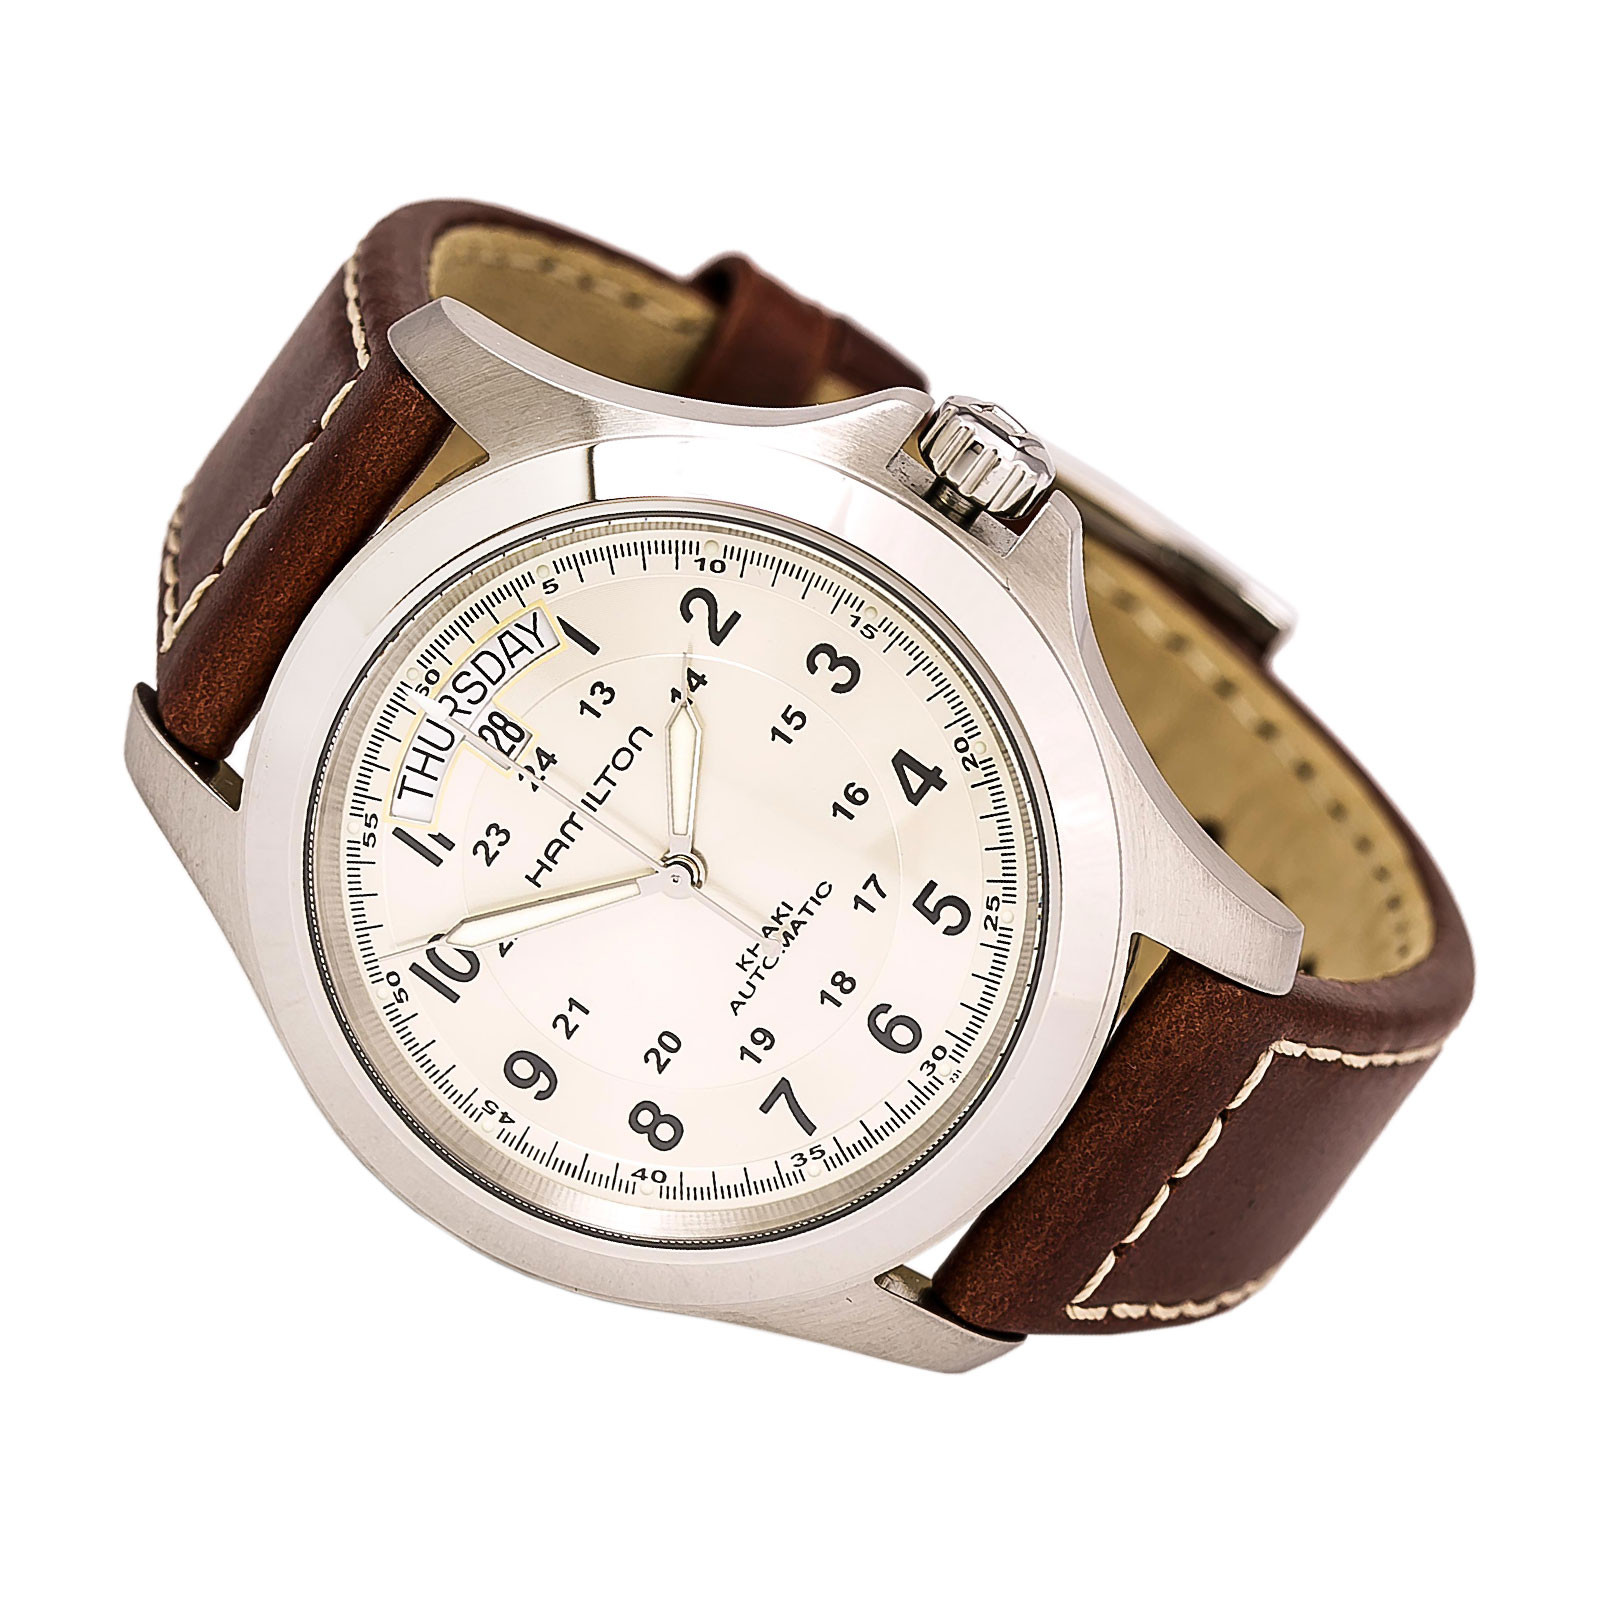 Hamilton H64455523 Khaki Field King Automatic Watch Review